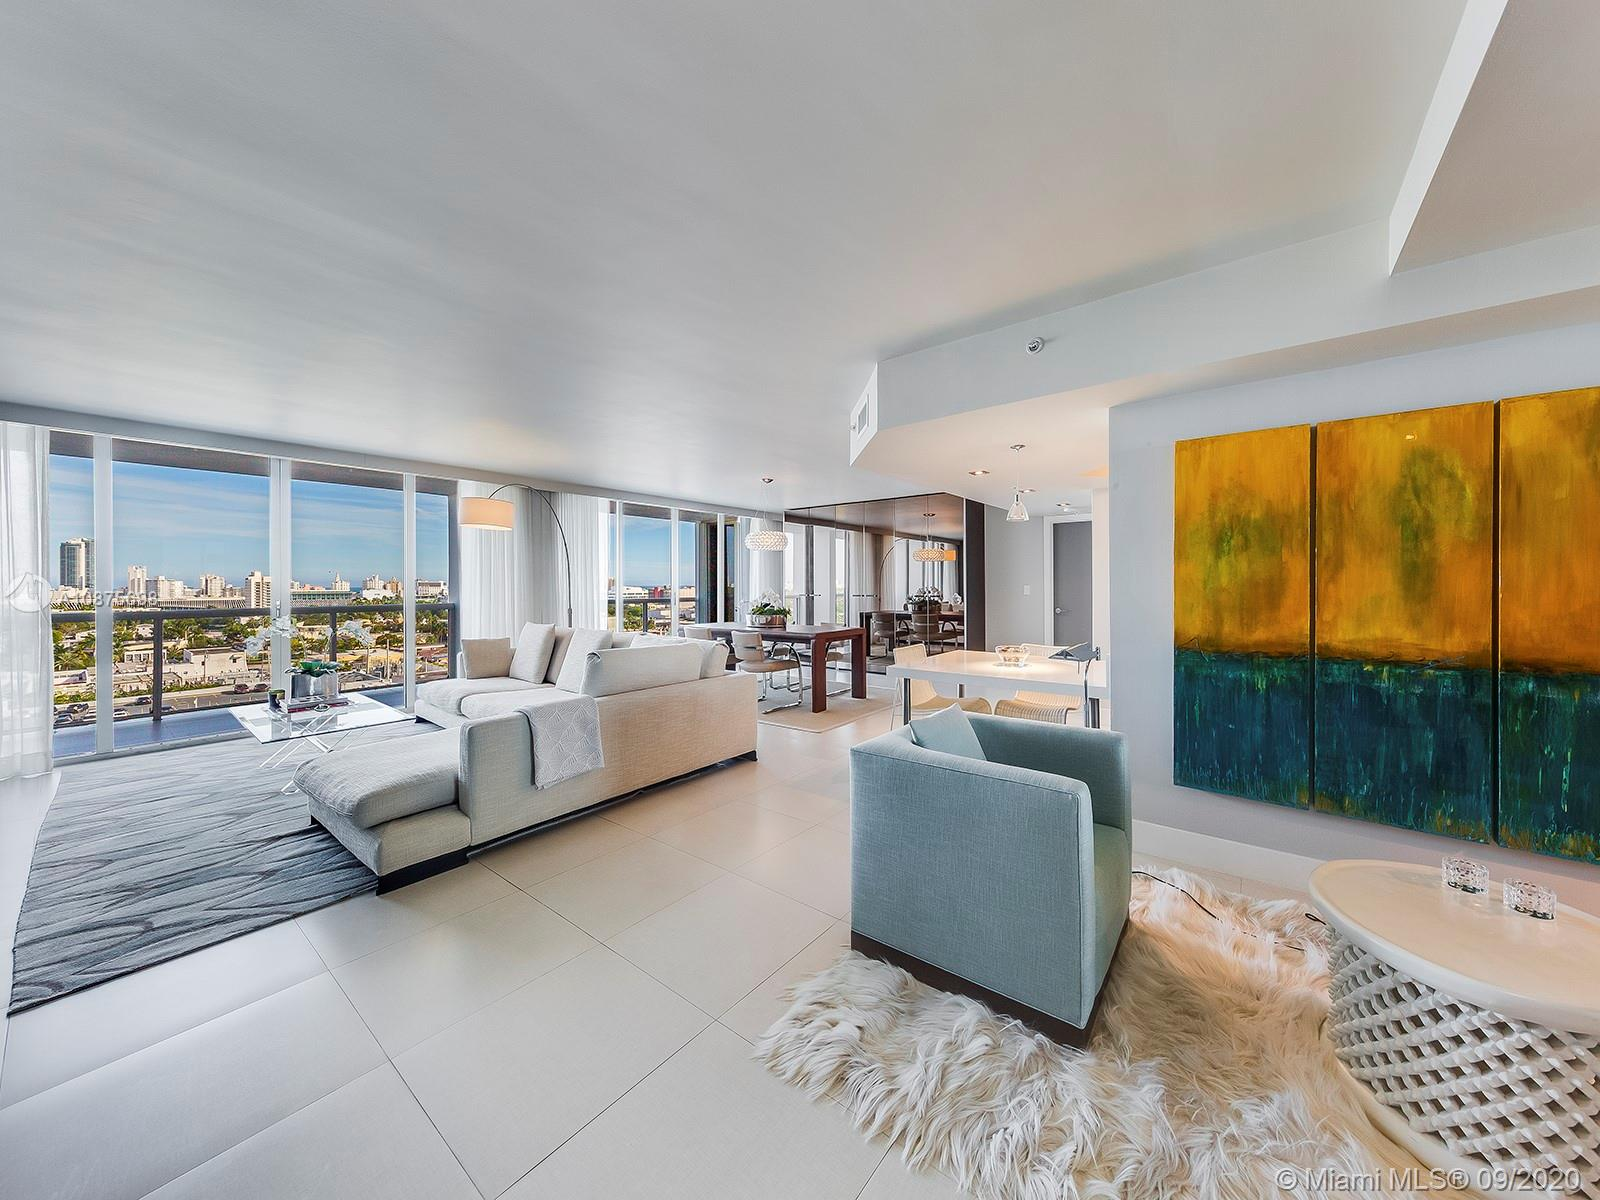 Sunset Harbour North #1409 - 1900 Sunset Harbour Dr #1409, Miami Beach, FL 33139